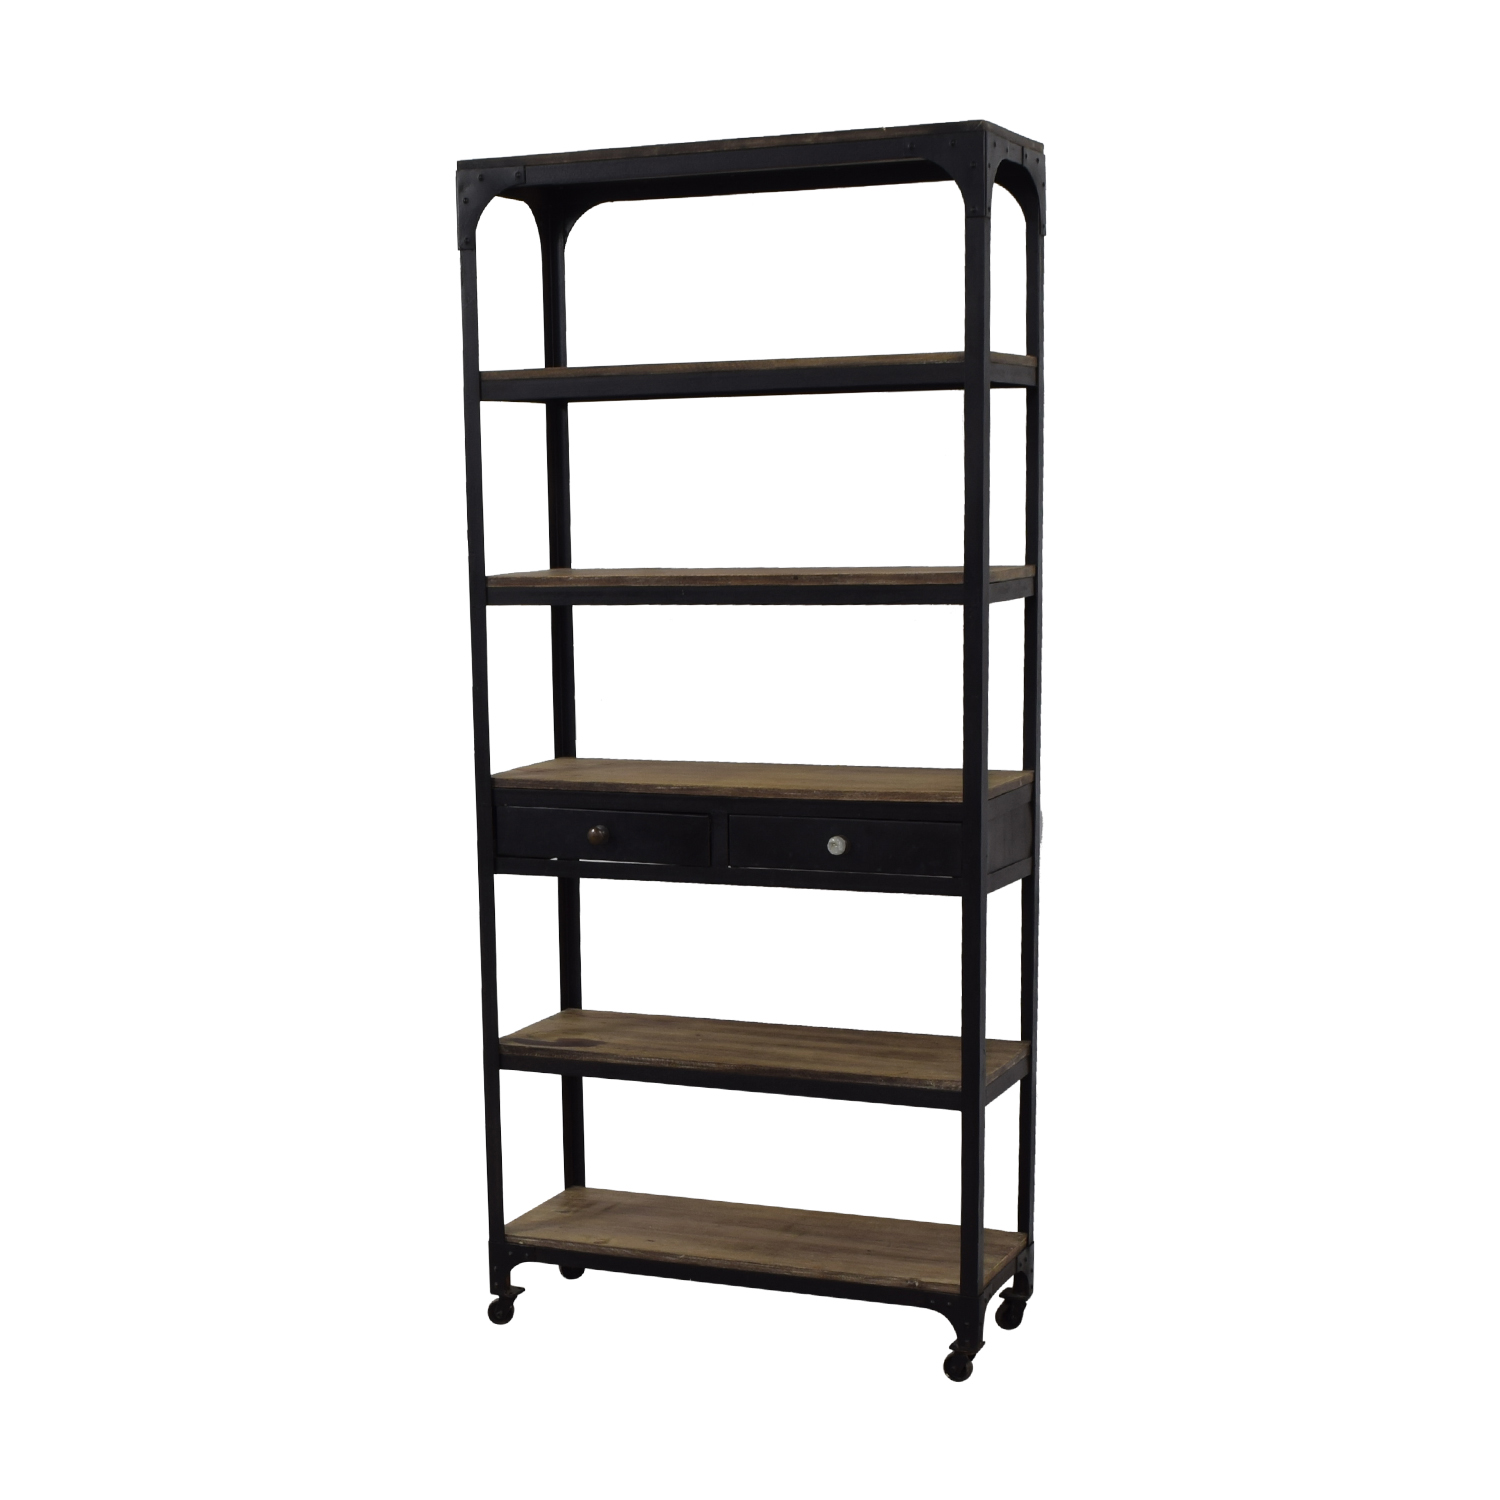 Restoration Hardware Restoration Hardware Bookshelf discount